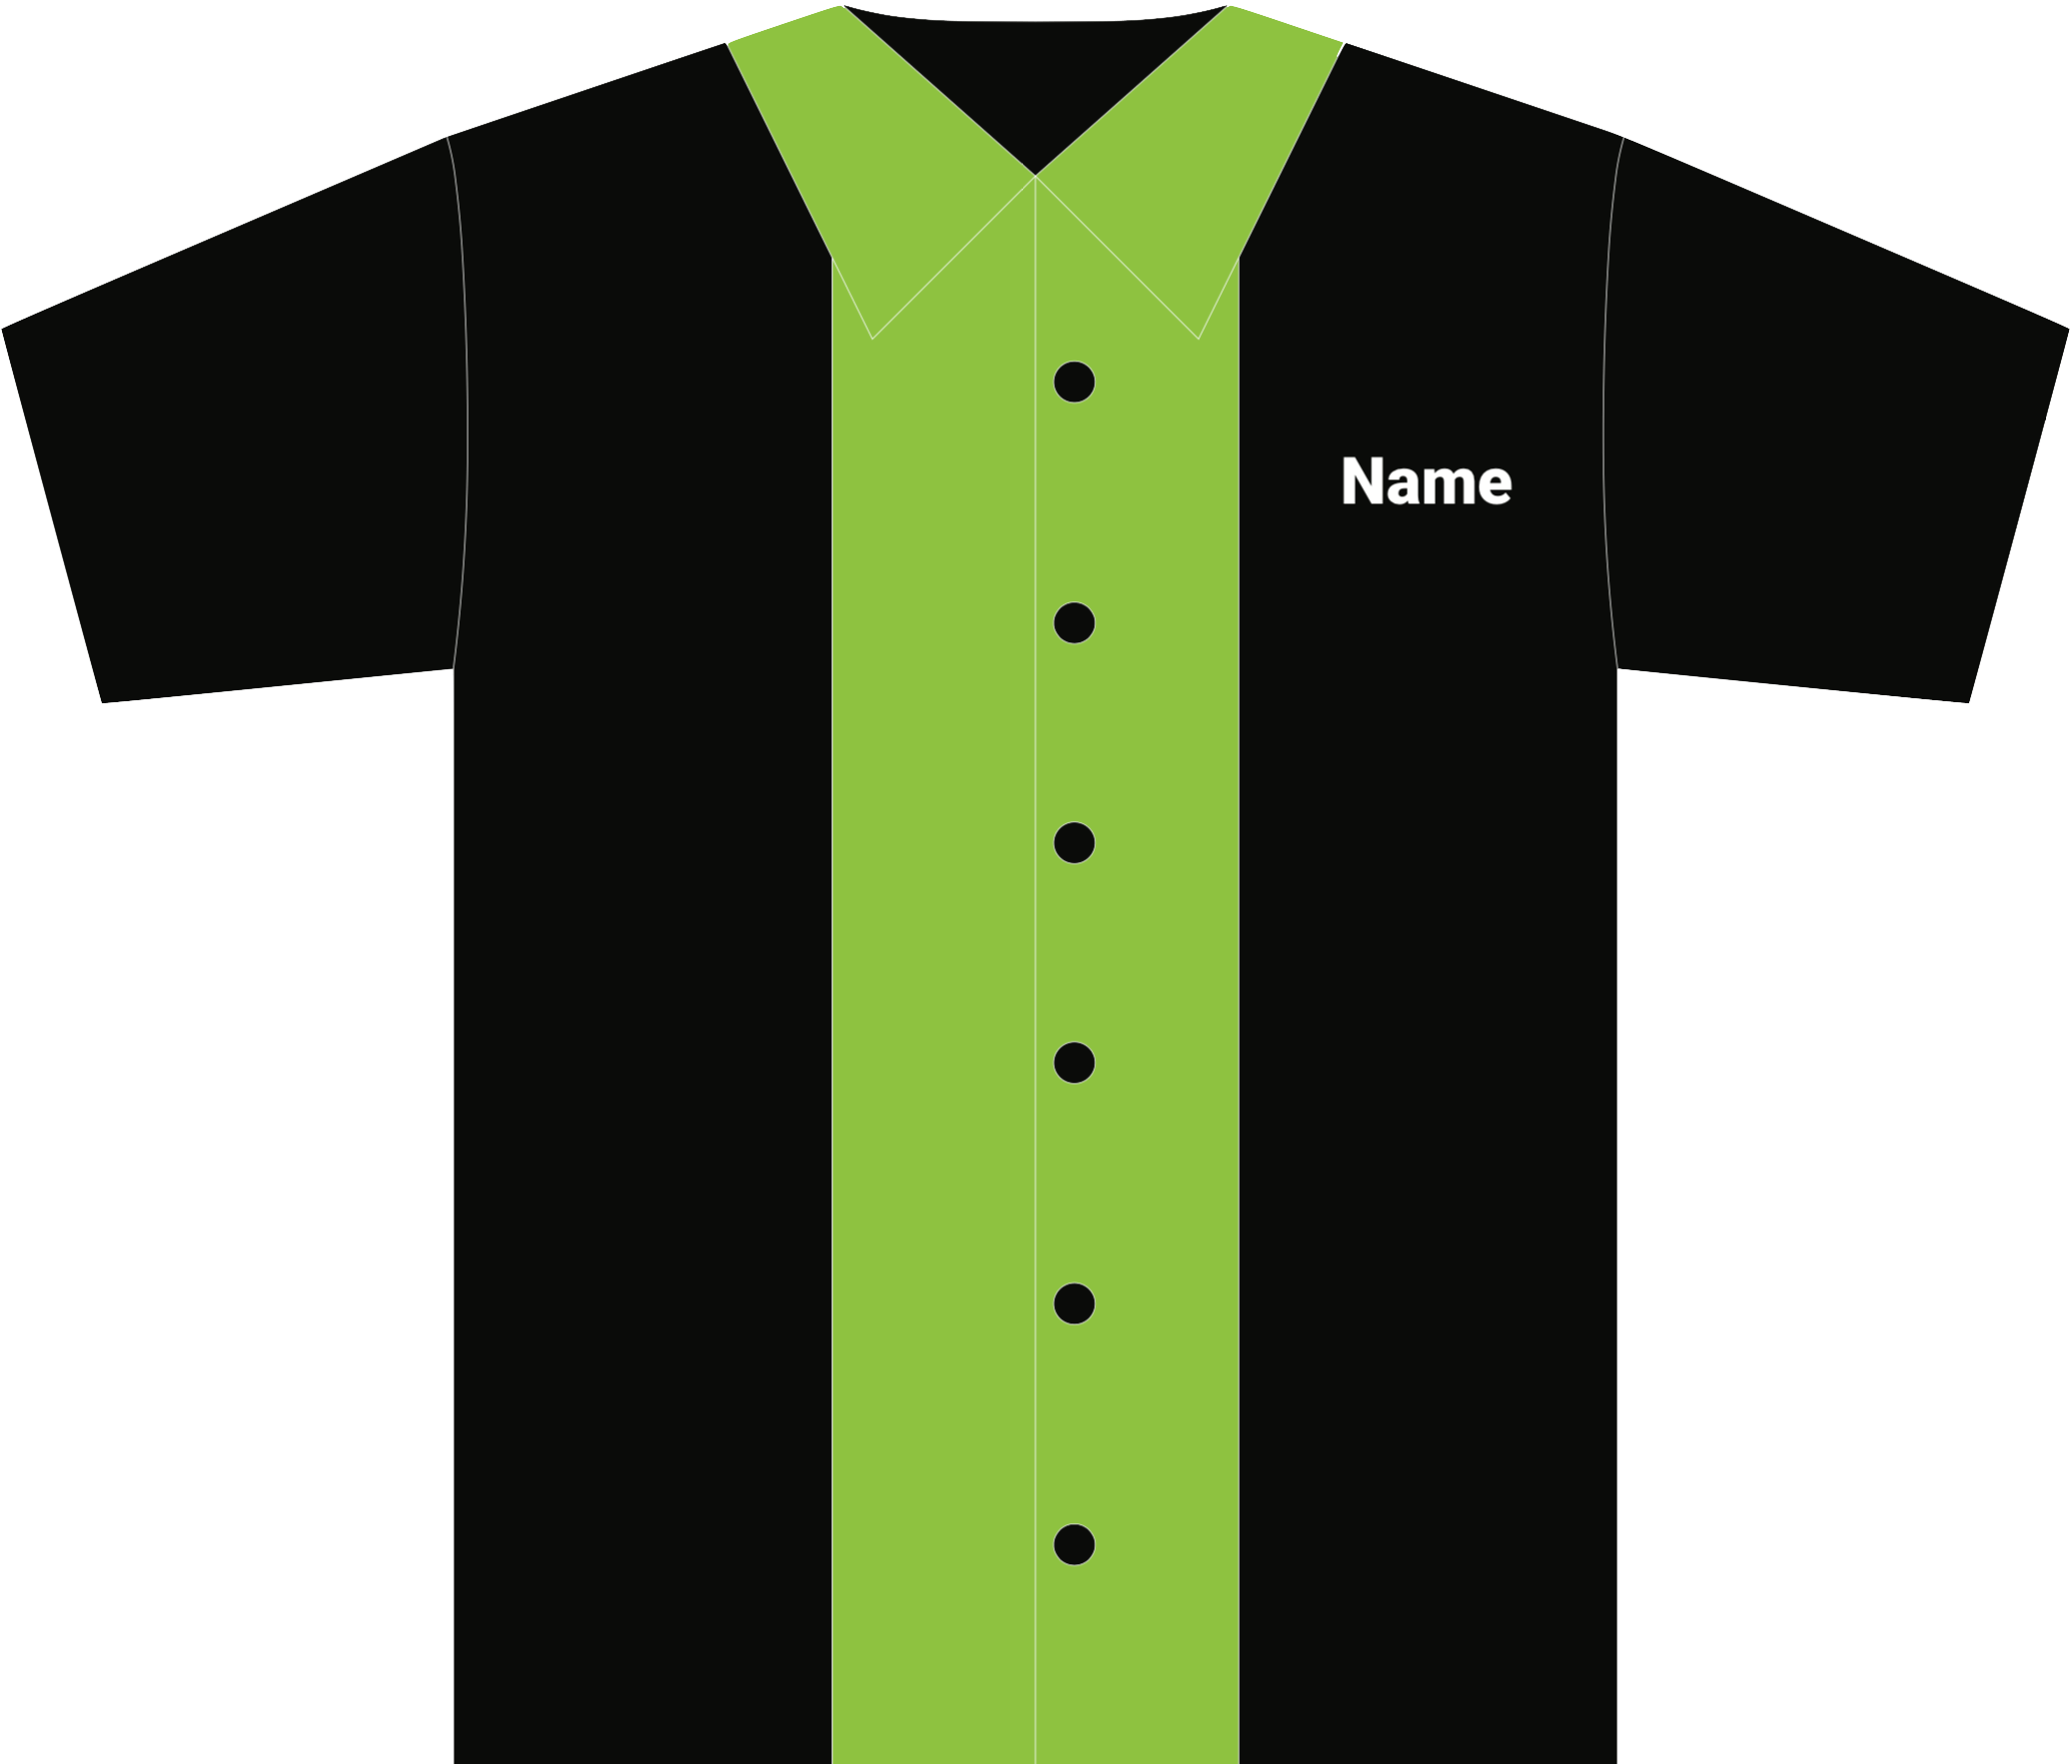 cb06fac22 Custom Storm Bowling Shirts – EDGE Engineering and Consulting Limited